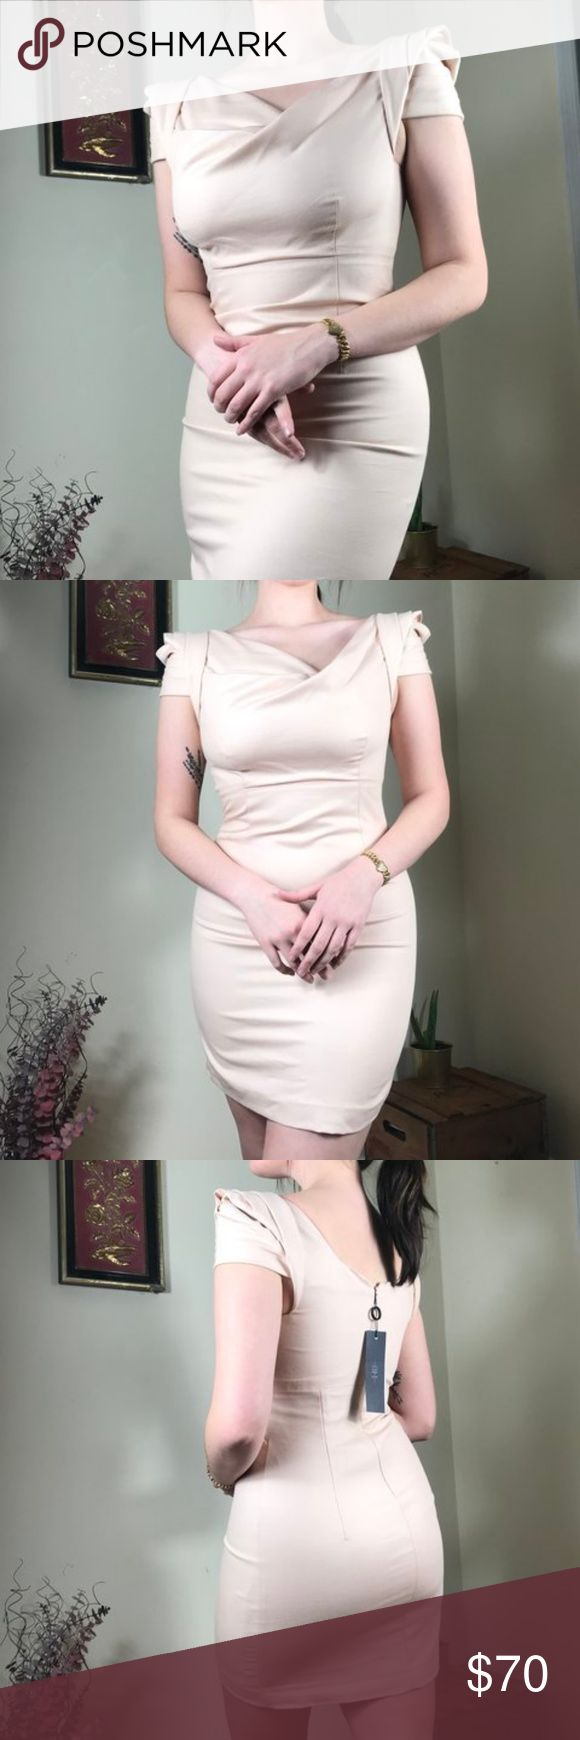 Vintage New with Tags Blush Dress Vintage new with tags nude blush toned dress that beautifully comes half off the shoulders. Somewhat stretchy to form to your body, but was modeled on a size 8. This was originally $372, so it's a TOTAL once in a life time steal. Black Halo Dresses Midi